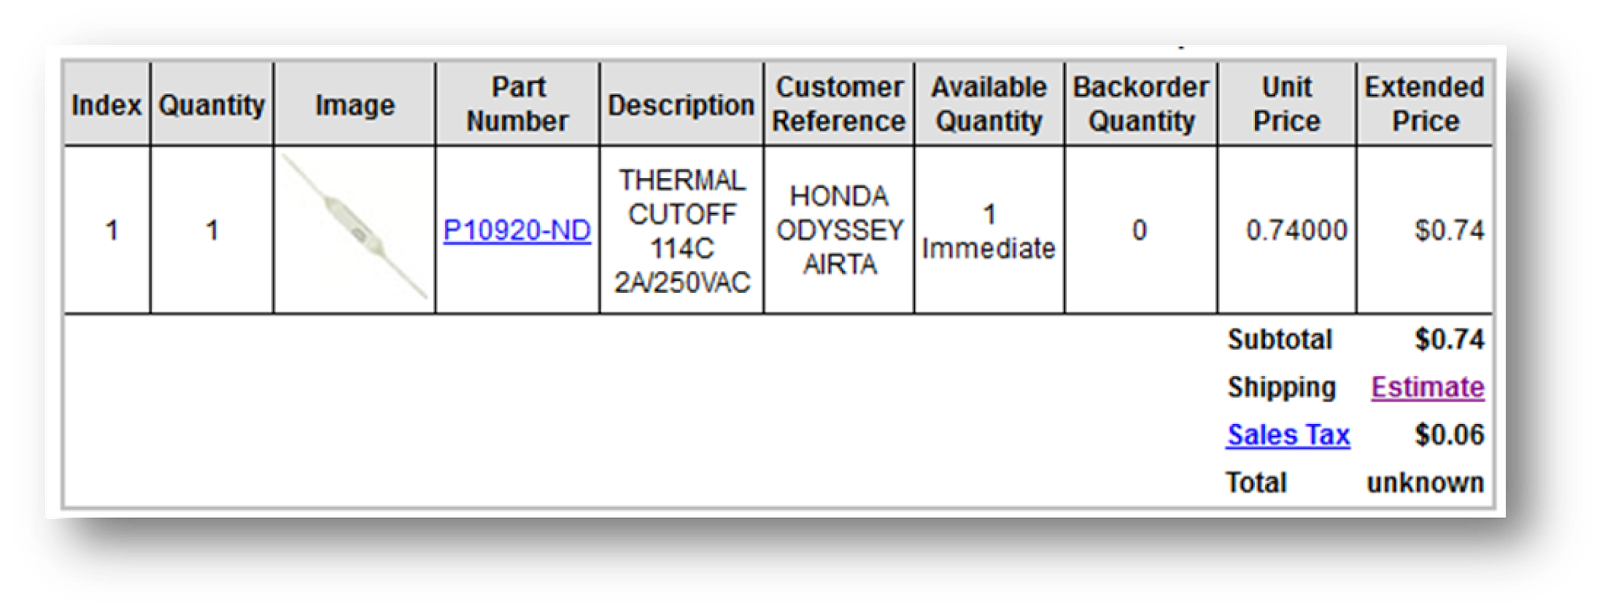 Thermal Cutoff: $0.74 fix for a $75.00 problem: The Thermal Cutoff inside the Honda Odyssey will fix the issue in many airconditioner failures. VS paying $75 for a whole new assembly.